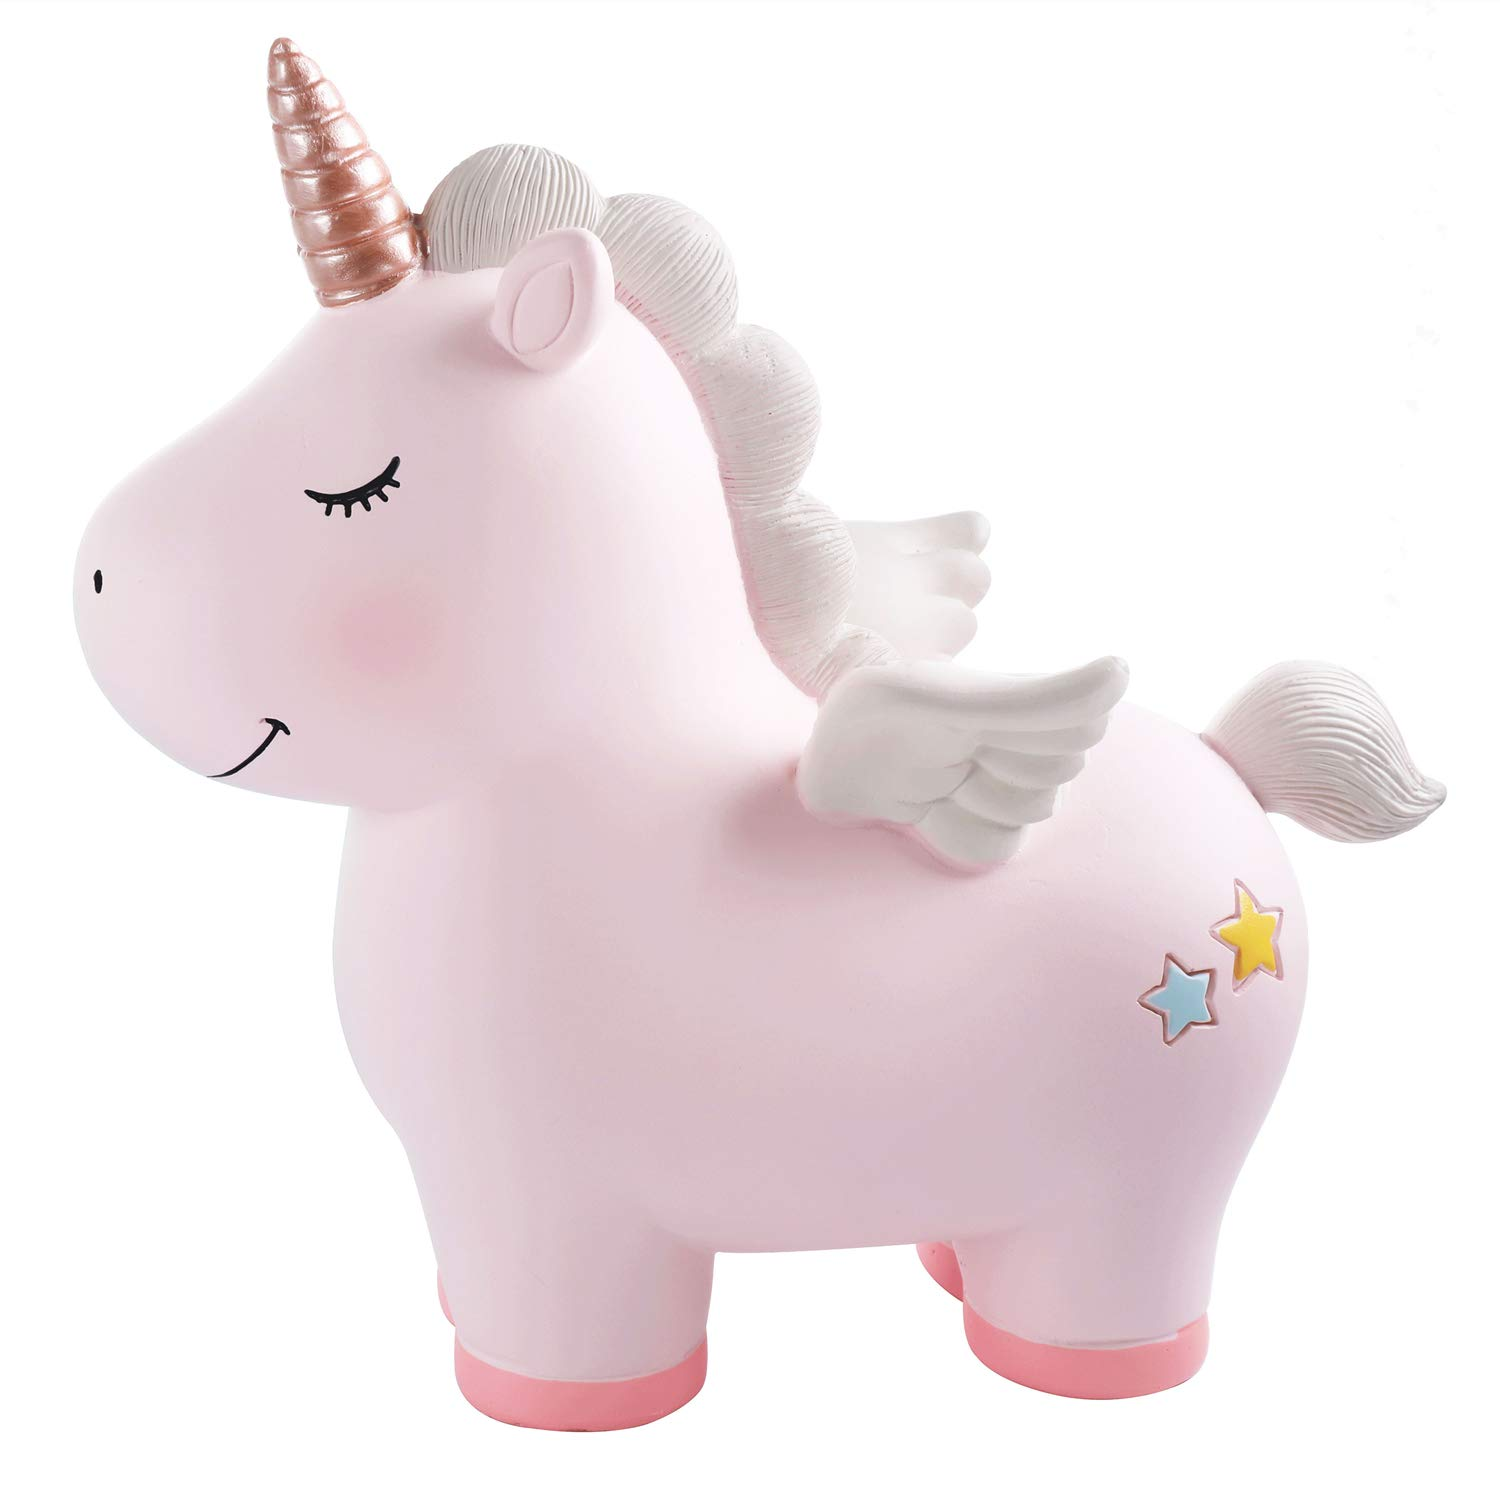 Lovely Rainbow Unicorn Large Size Resin Piggy Bank Coin Bank Money Bank Best Birthday Gifts, for Kids Boys Girls Home Decoration (Rainbow Unicorn-Pink) by Vanvene